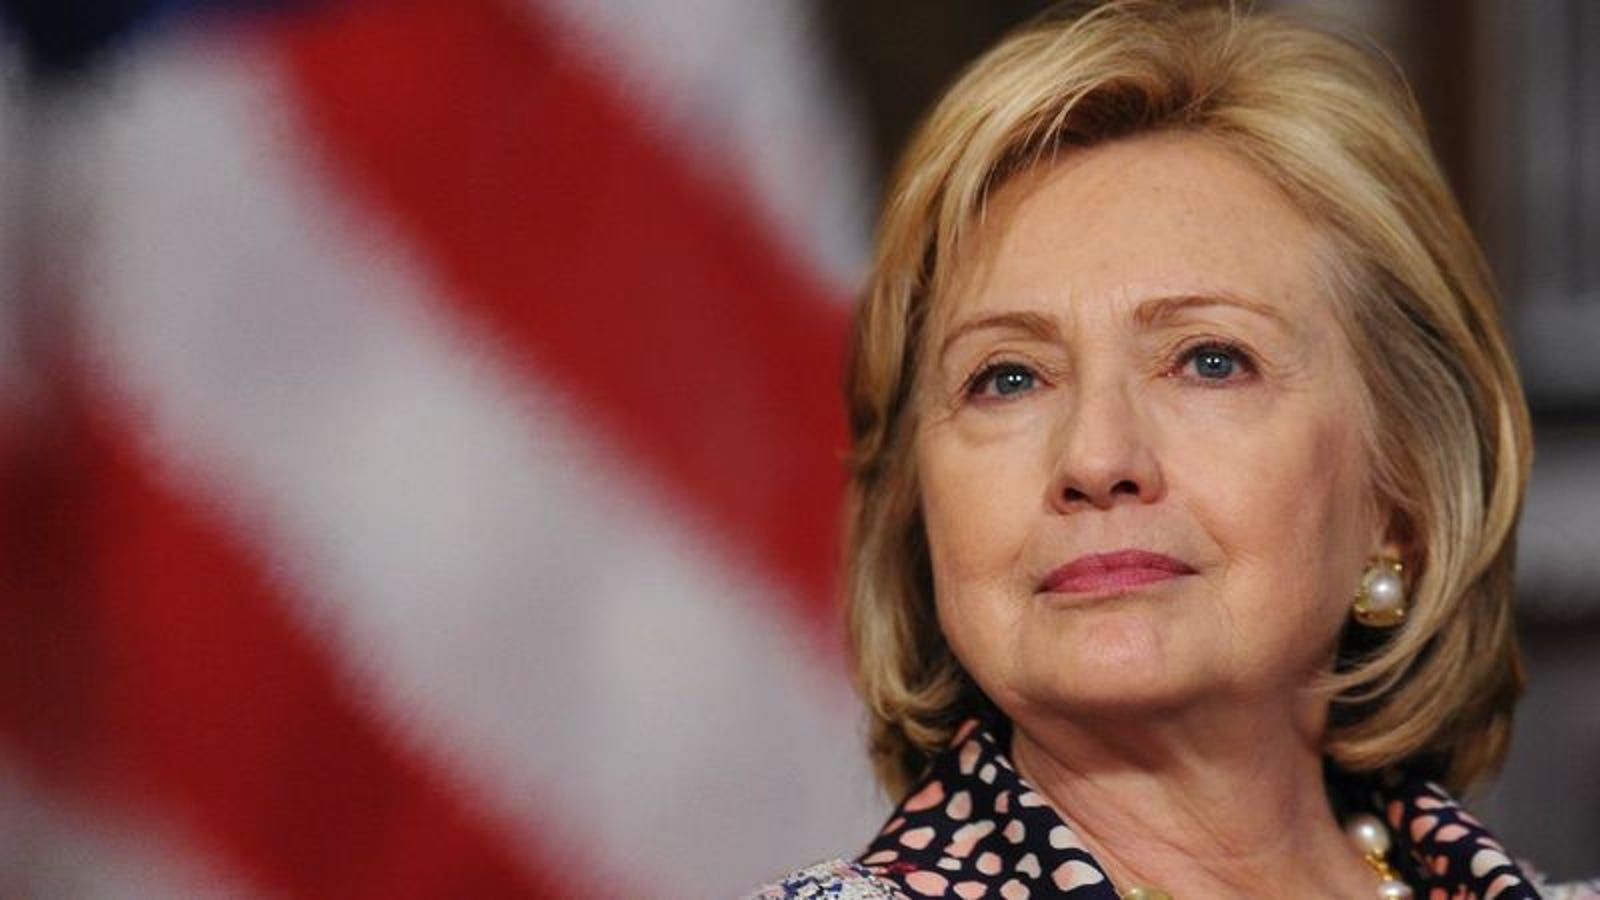 Candidate Profile: Hillary Clinton